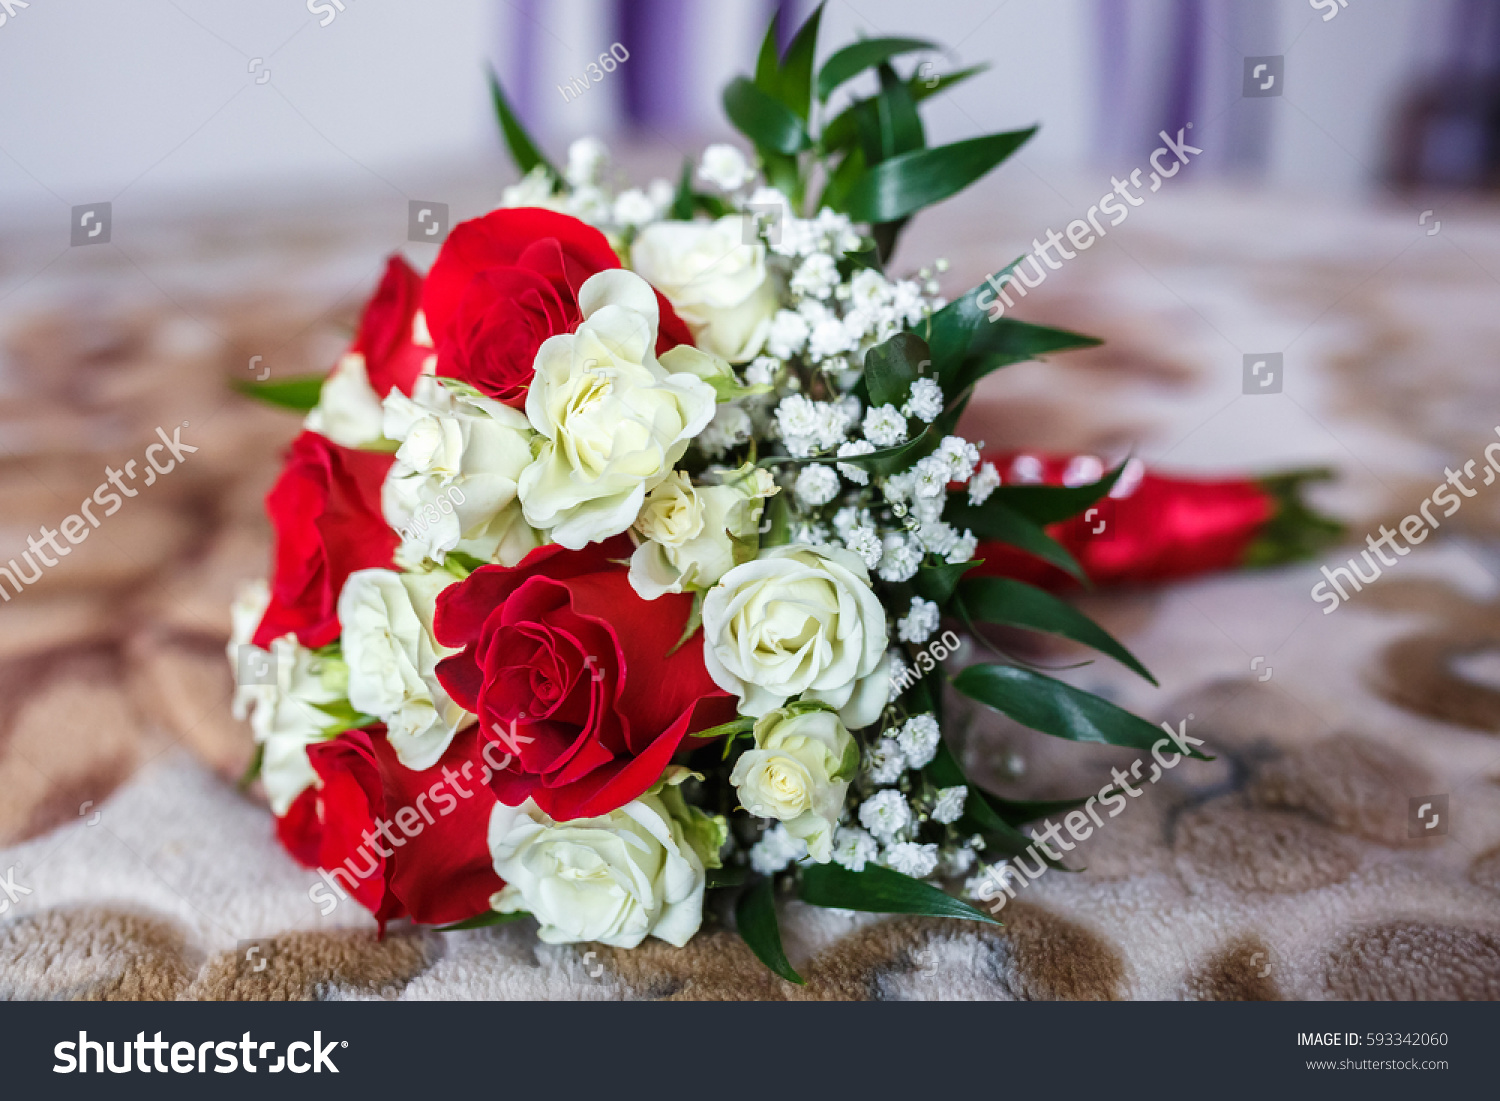 Top View Of Luxury Bouquet Of Red And White Flowers Top View With